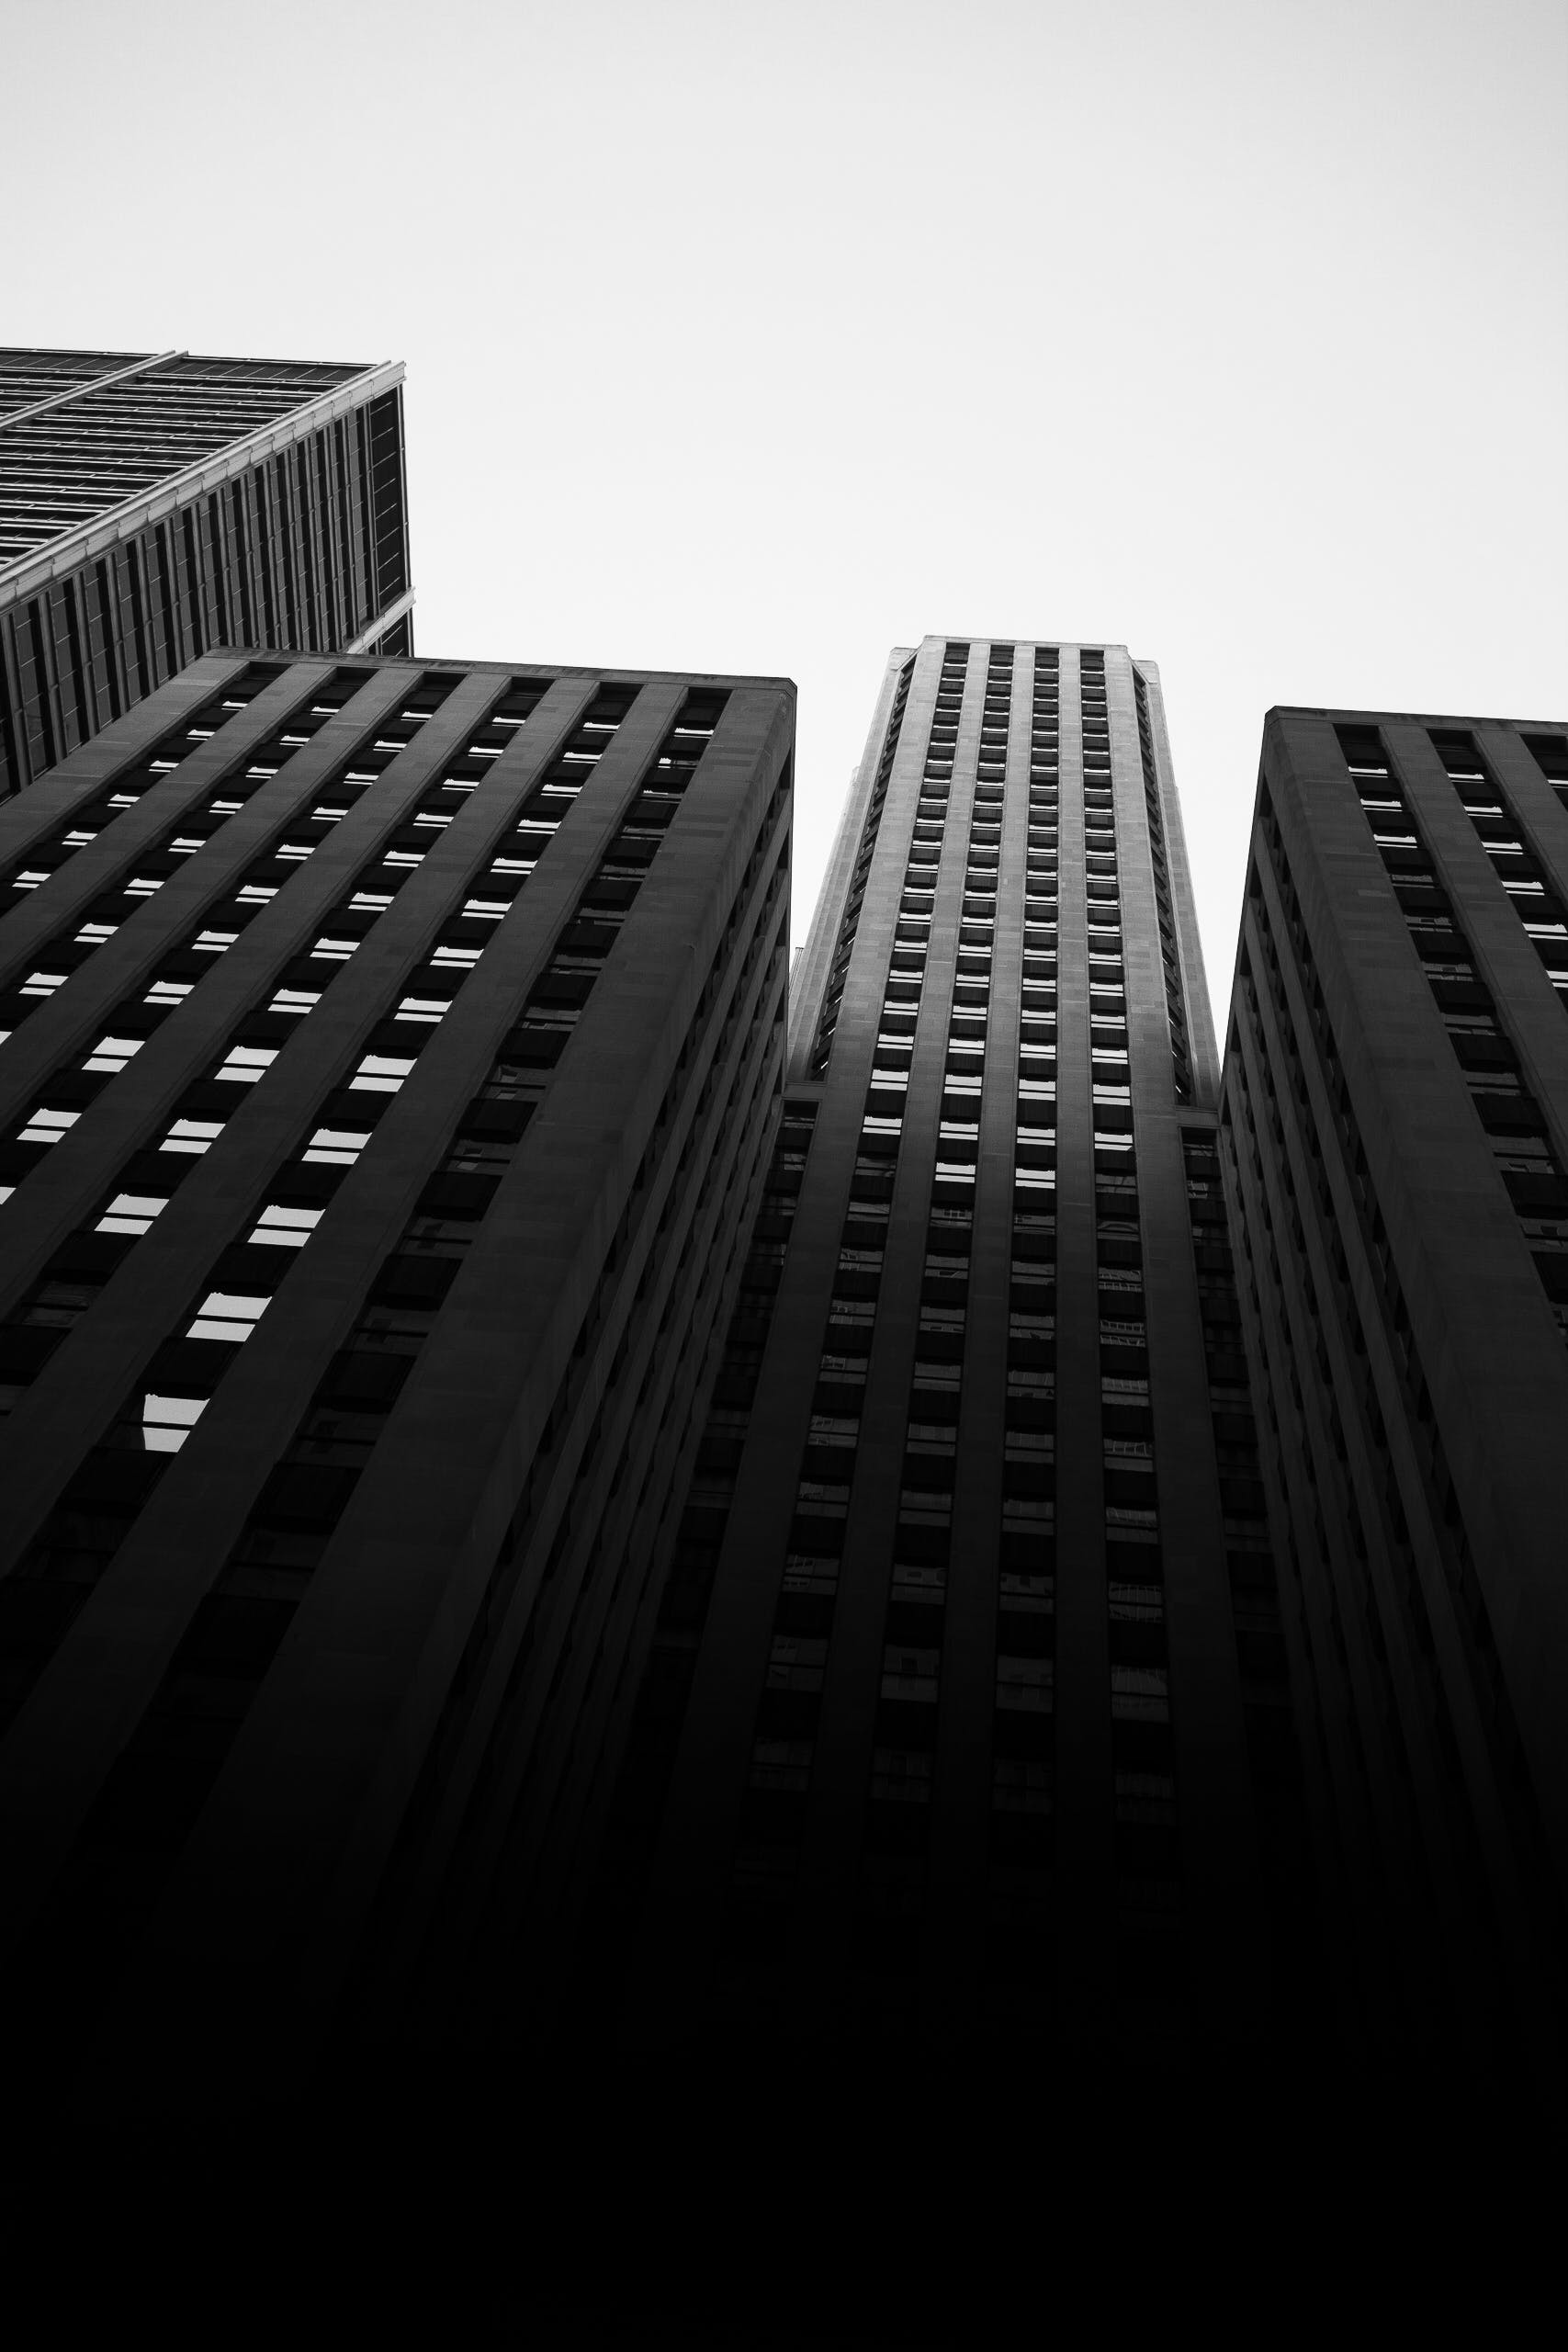 Monochrome Photo of High-rise Buildings